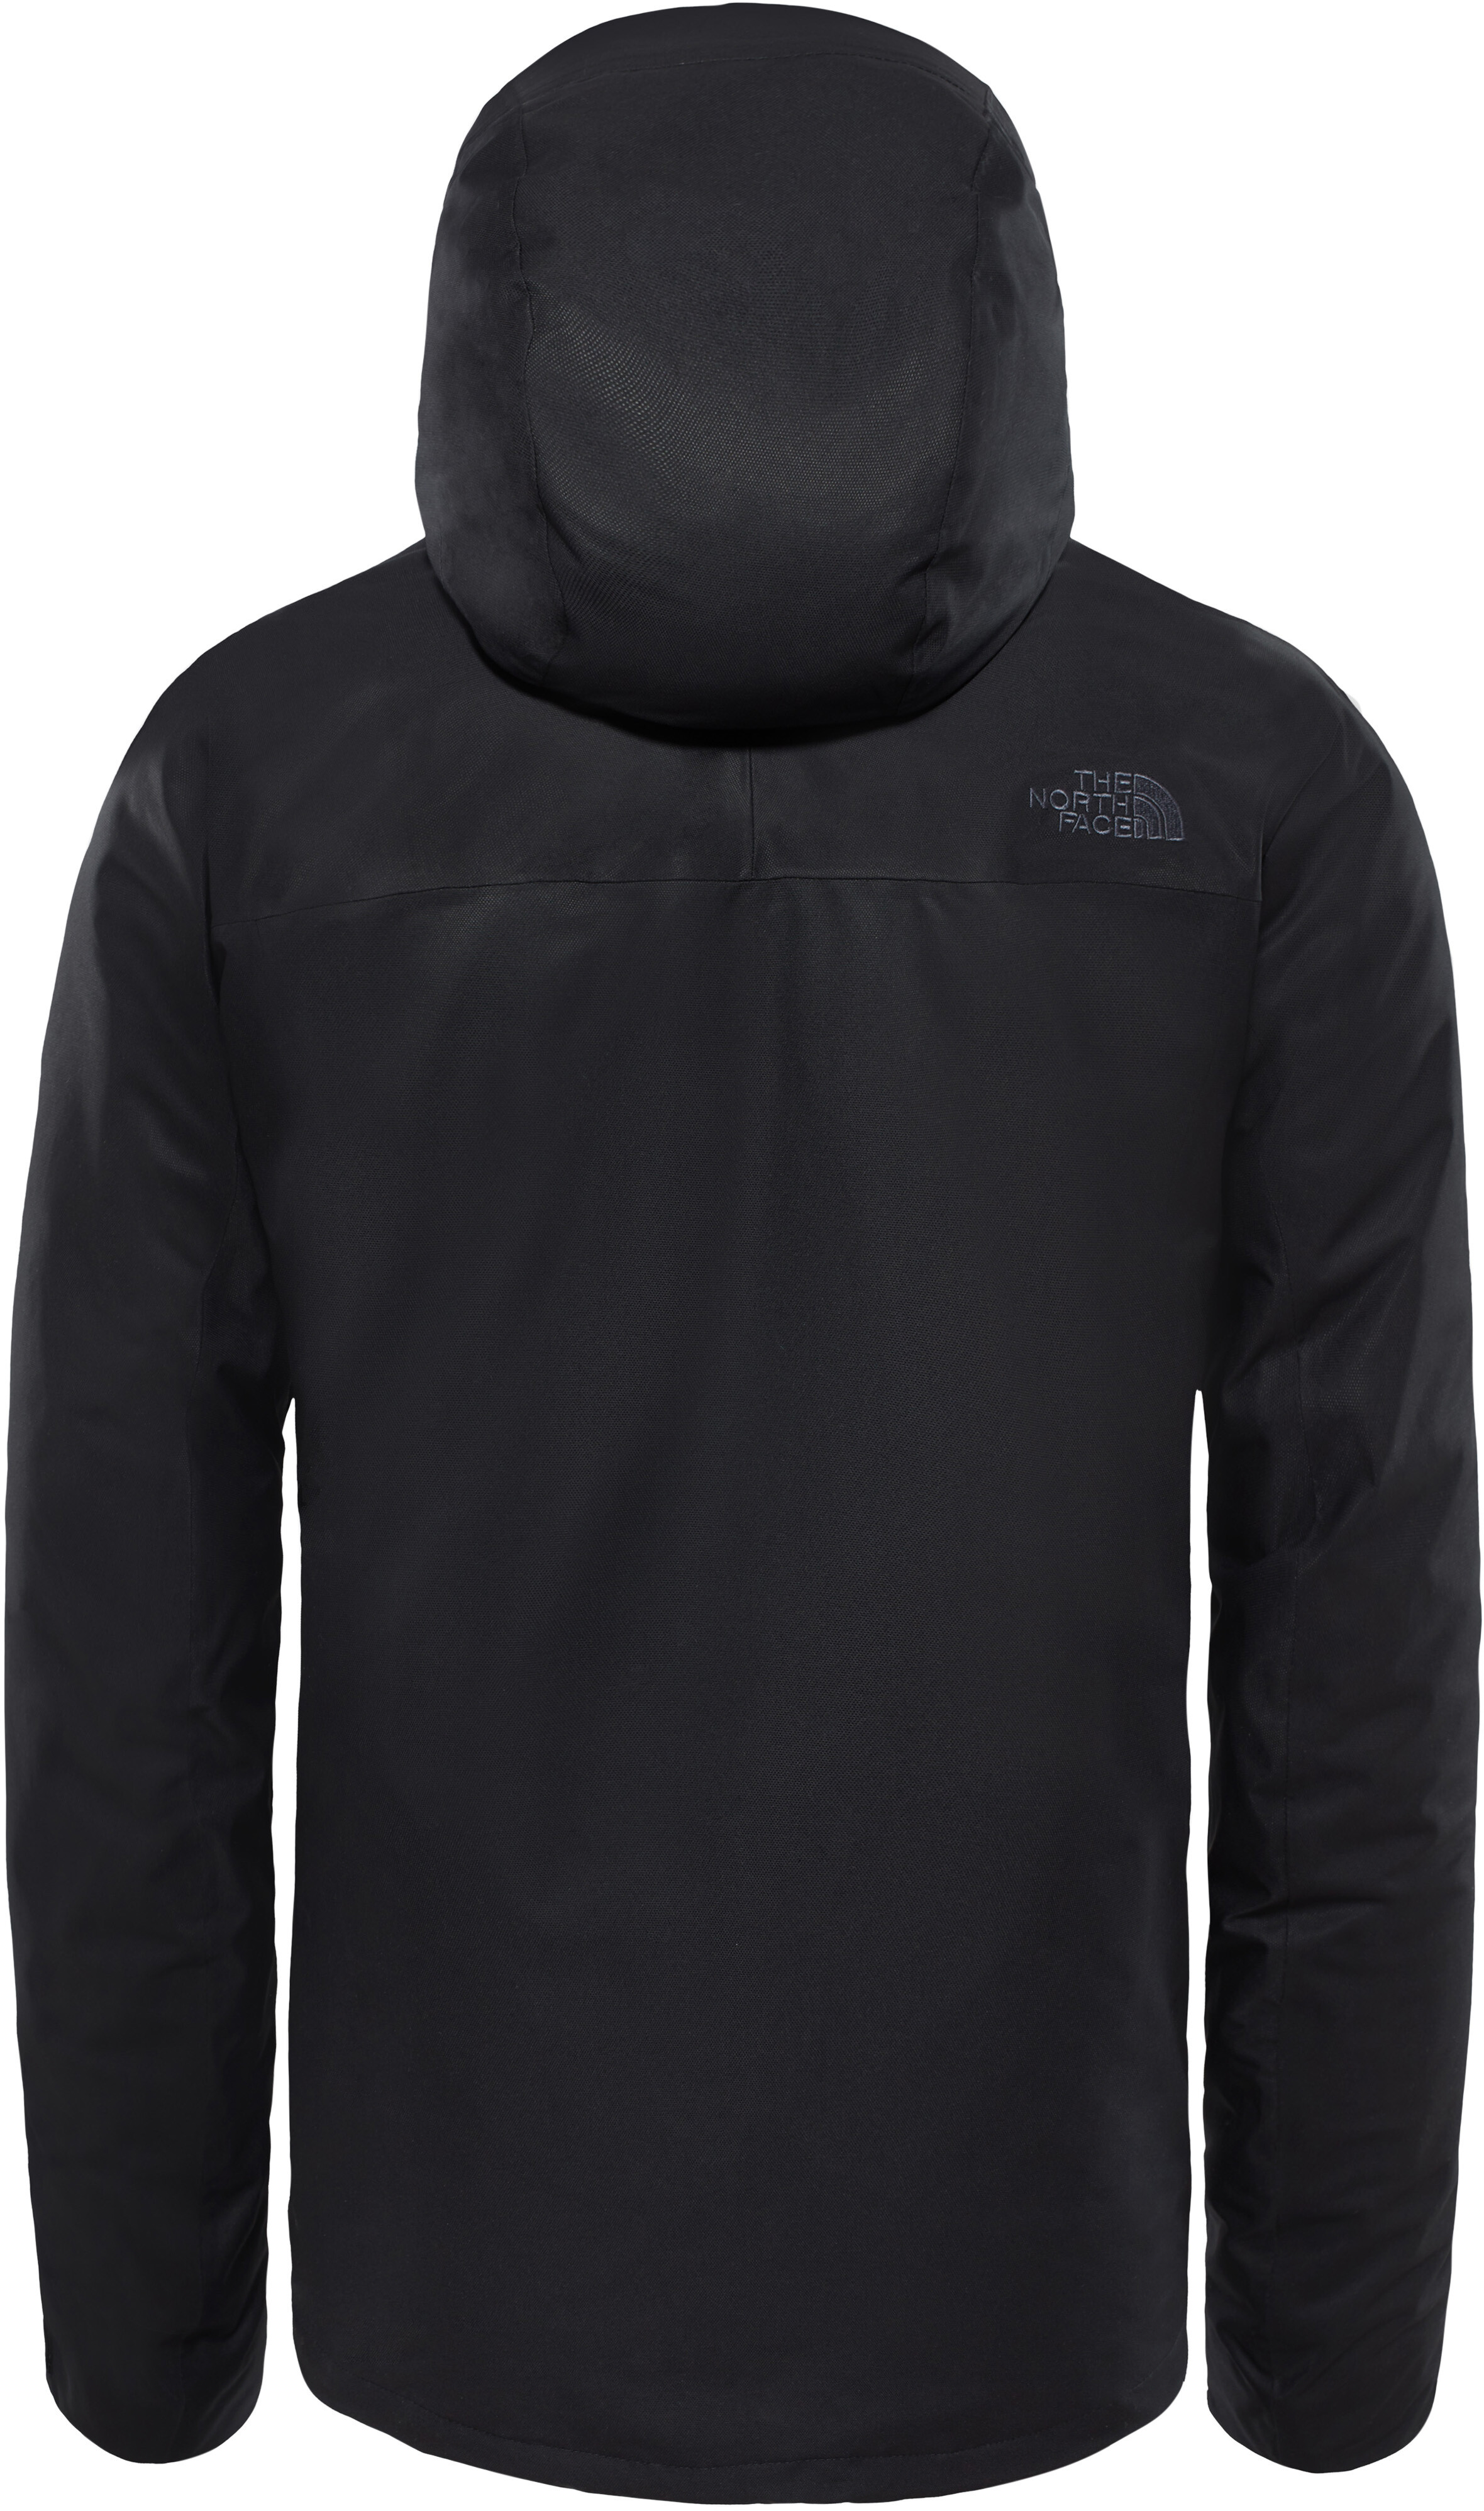 7c18271297d0f The North Face Thermoball Snow - Chaqueta Hombre - negro